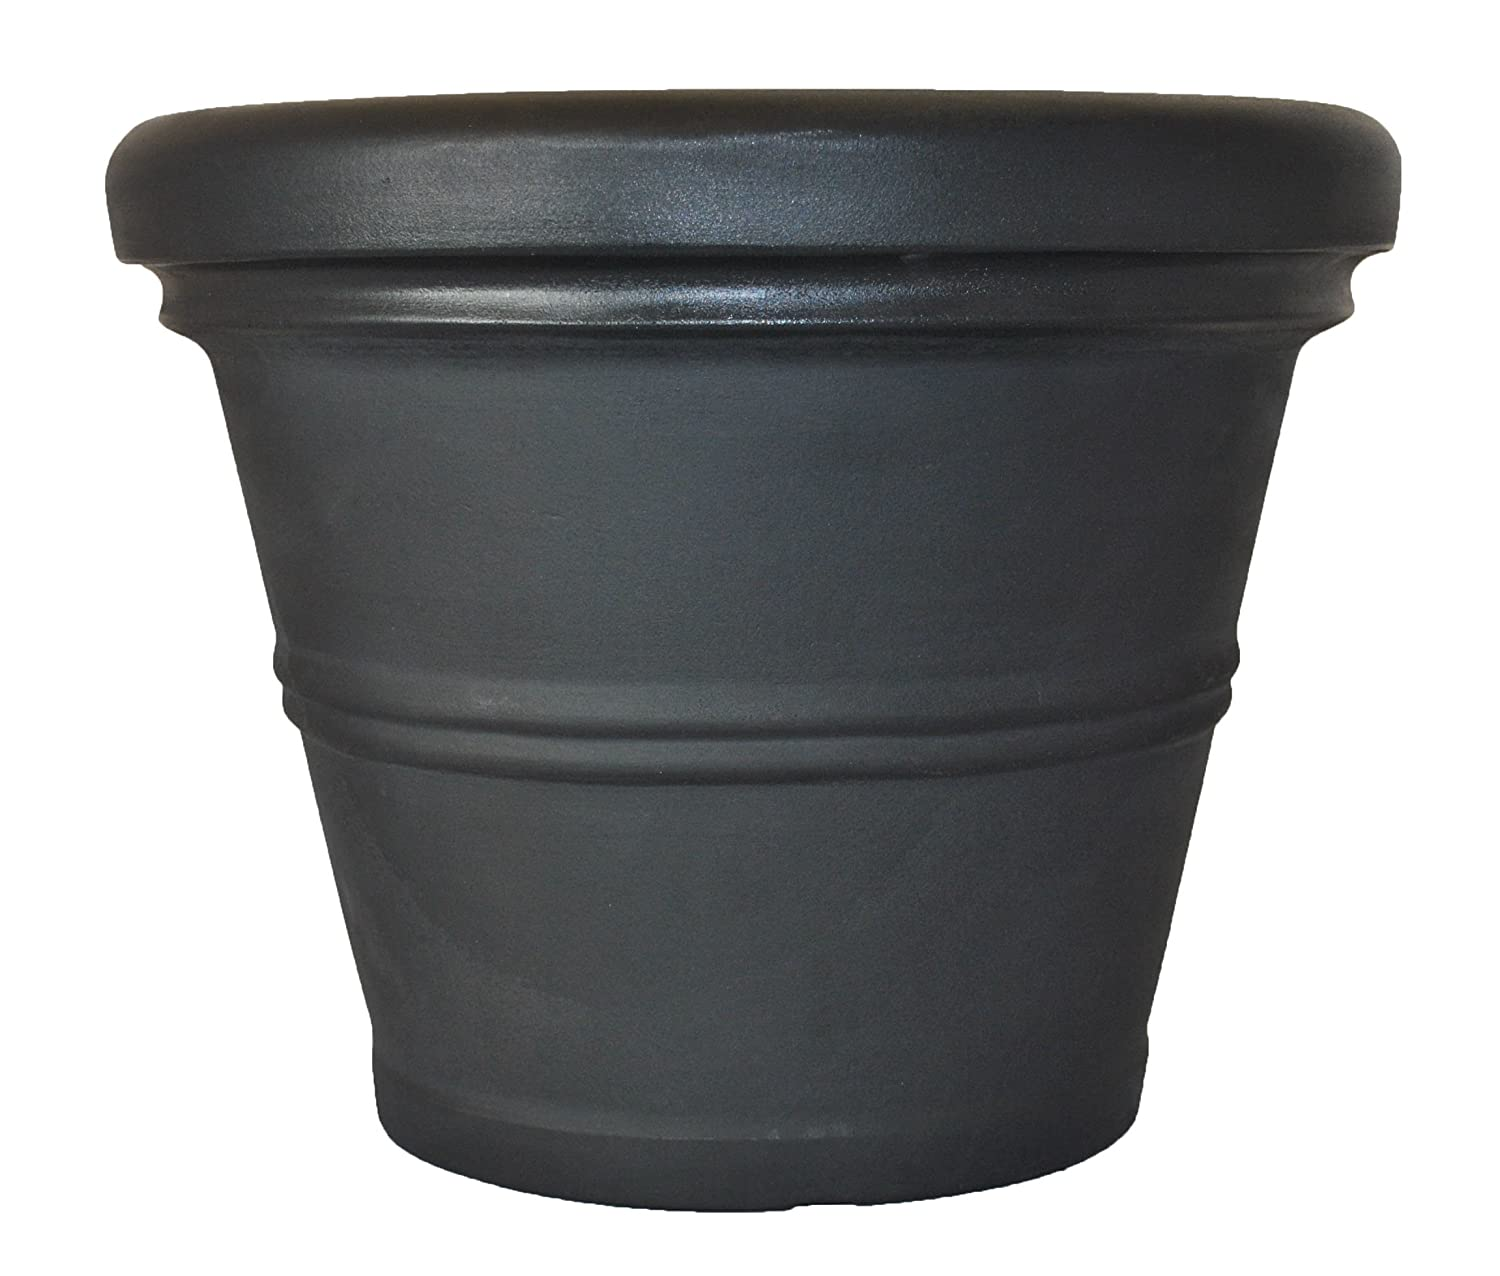 Tusco Products RR30BK Rolled Rim Garden Pot, 30-Inch, Black